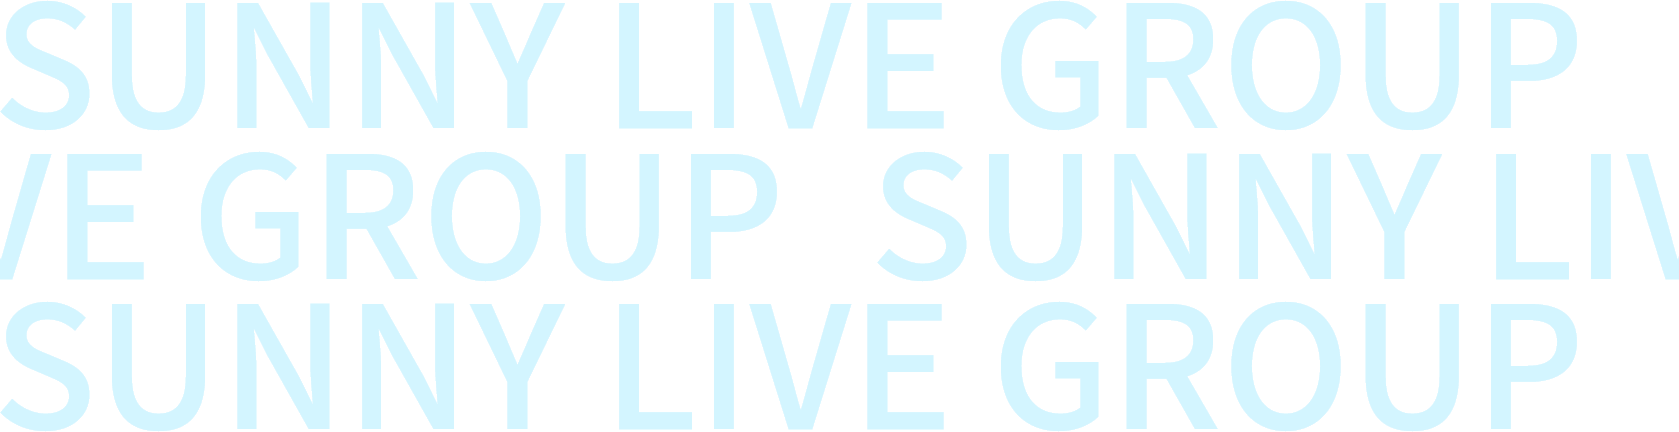 SUNNY LIVE GROUP